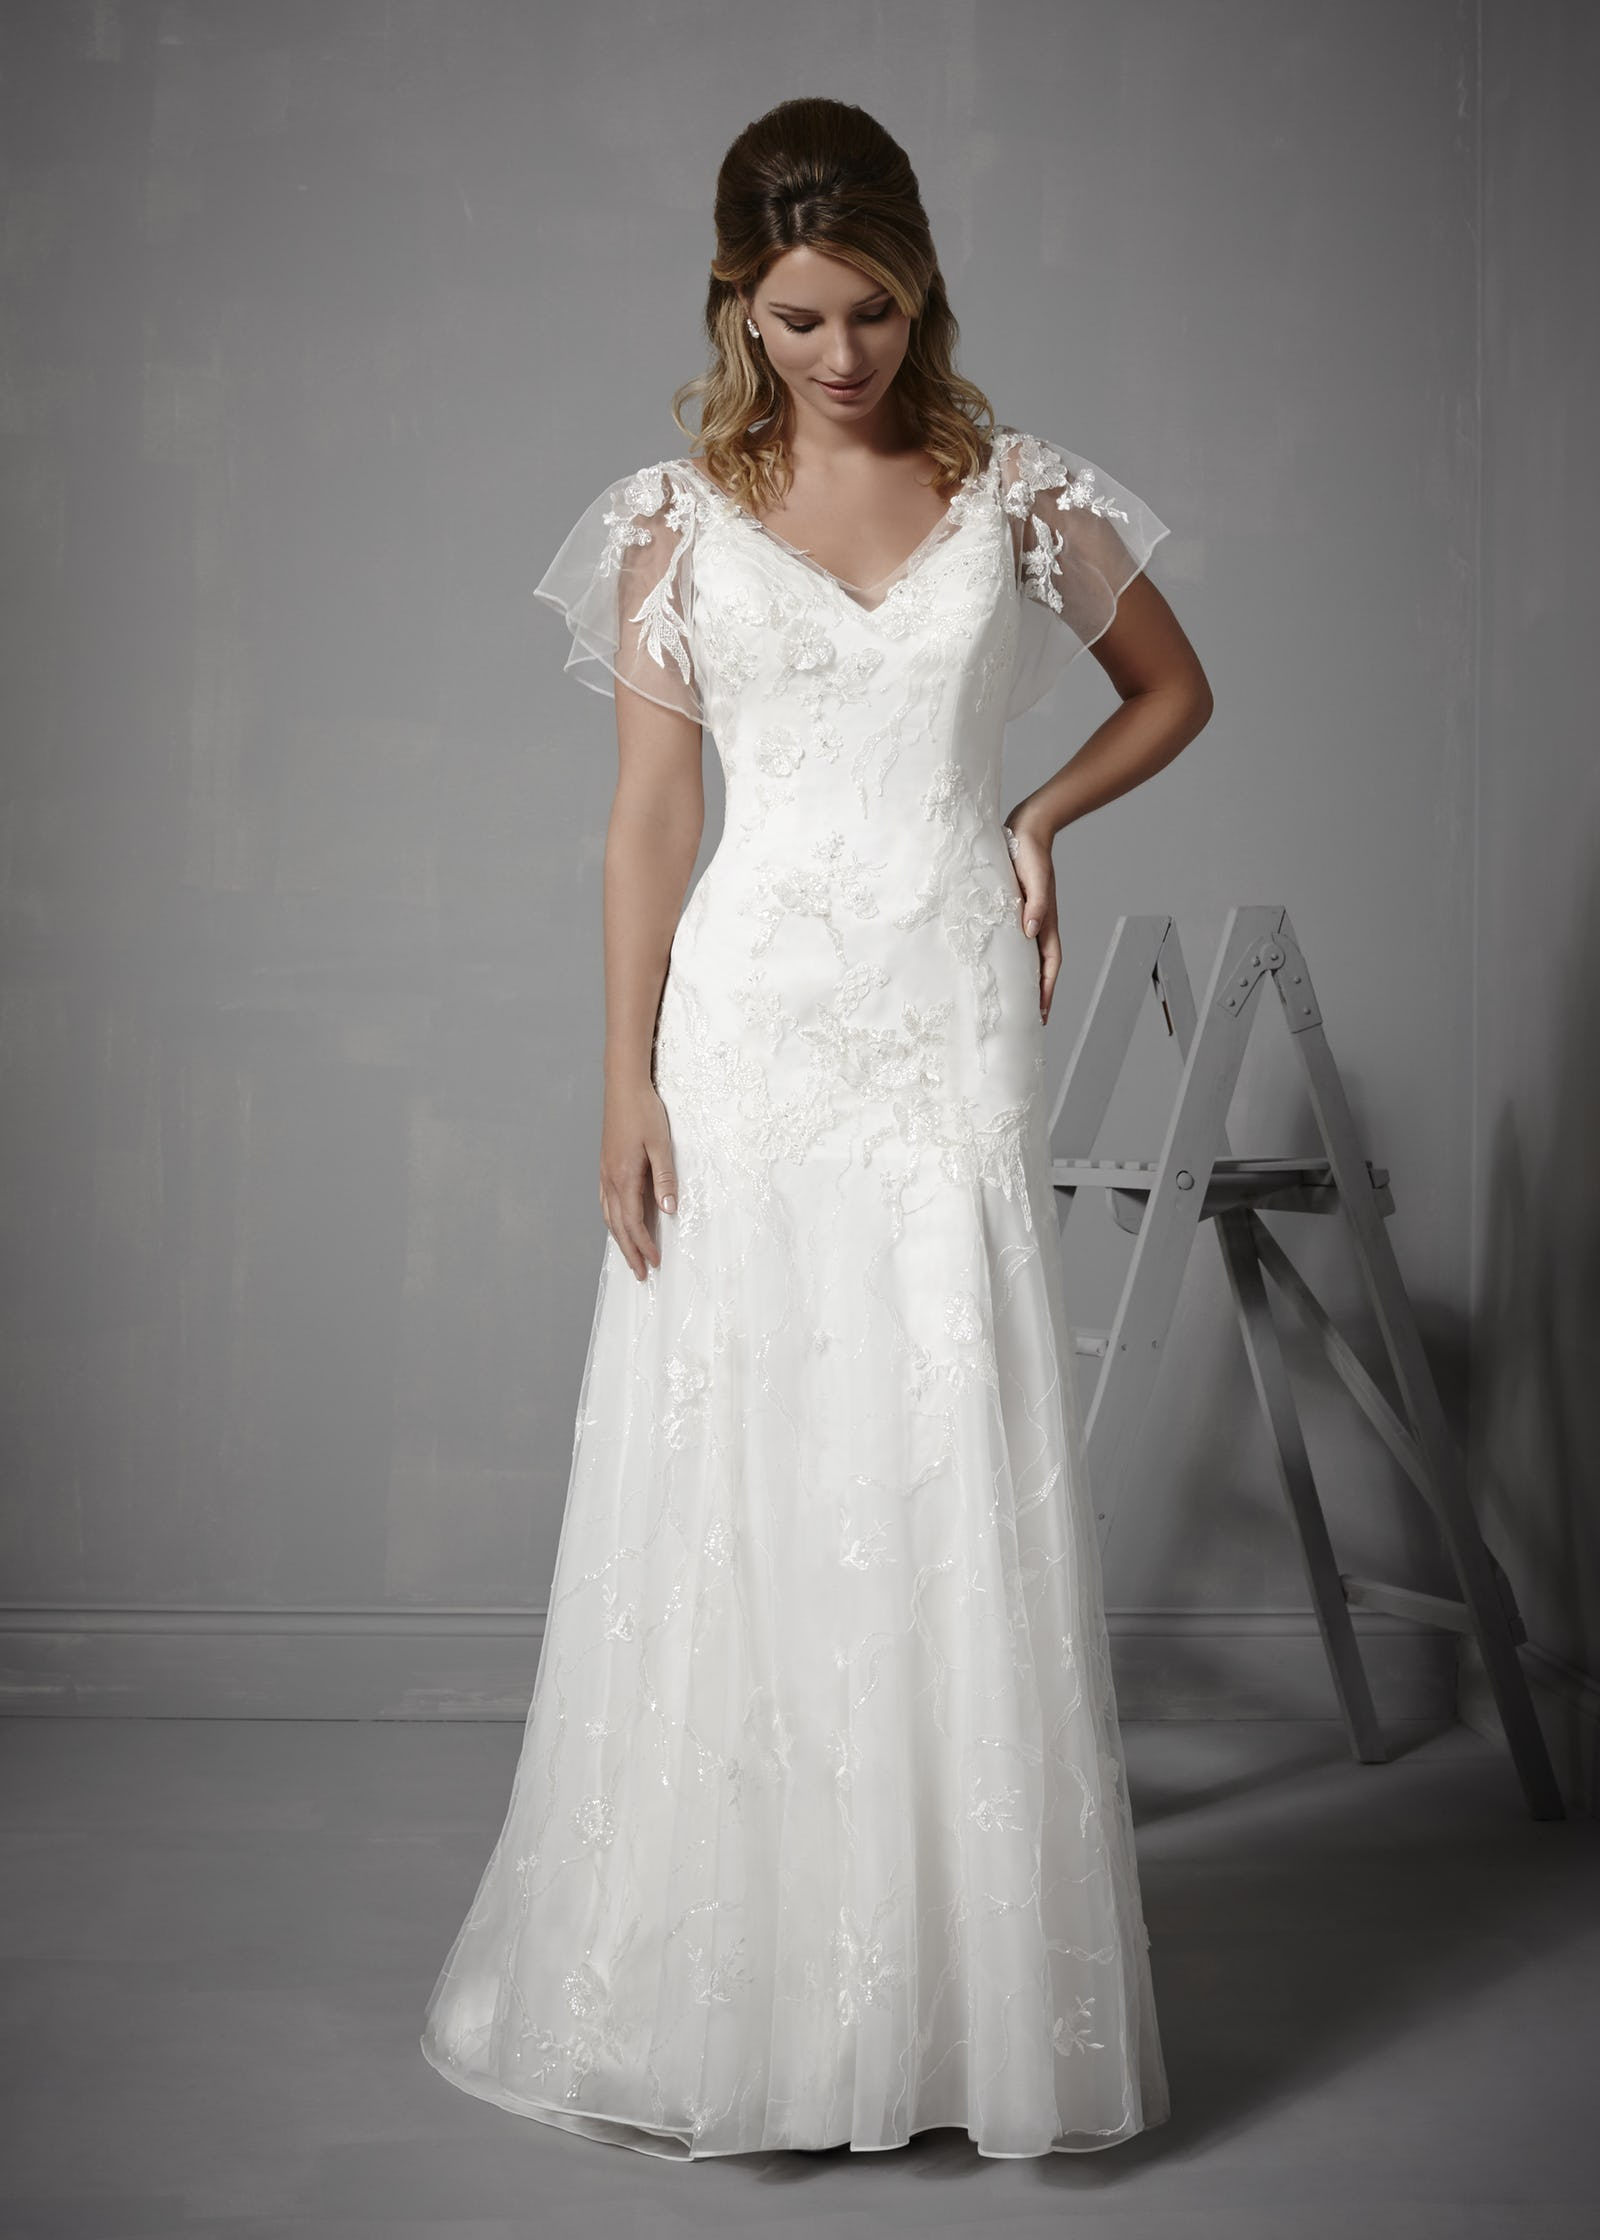 Cyprus Romantica Wedding Dress at Kent Wedding Centre